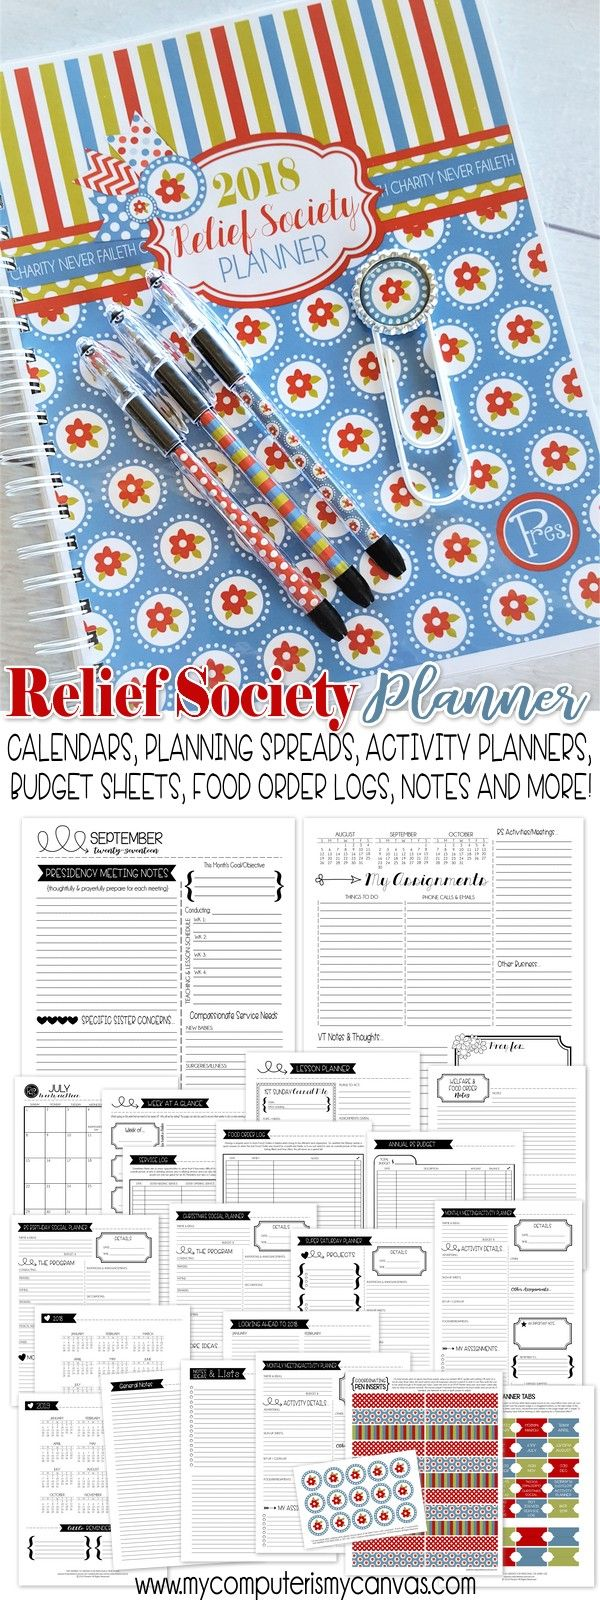 activity planners